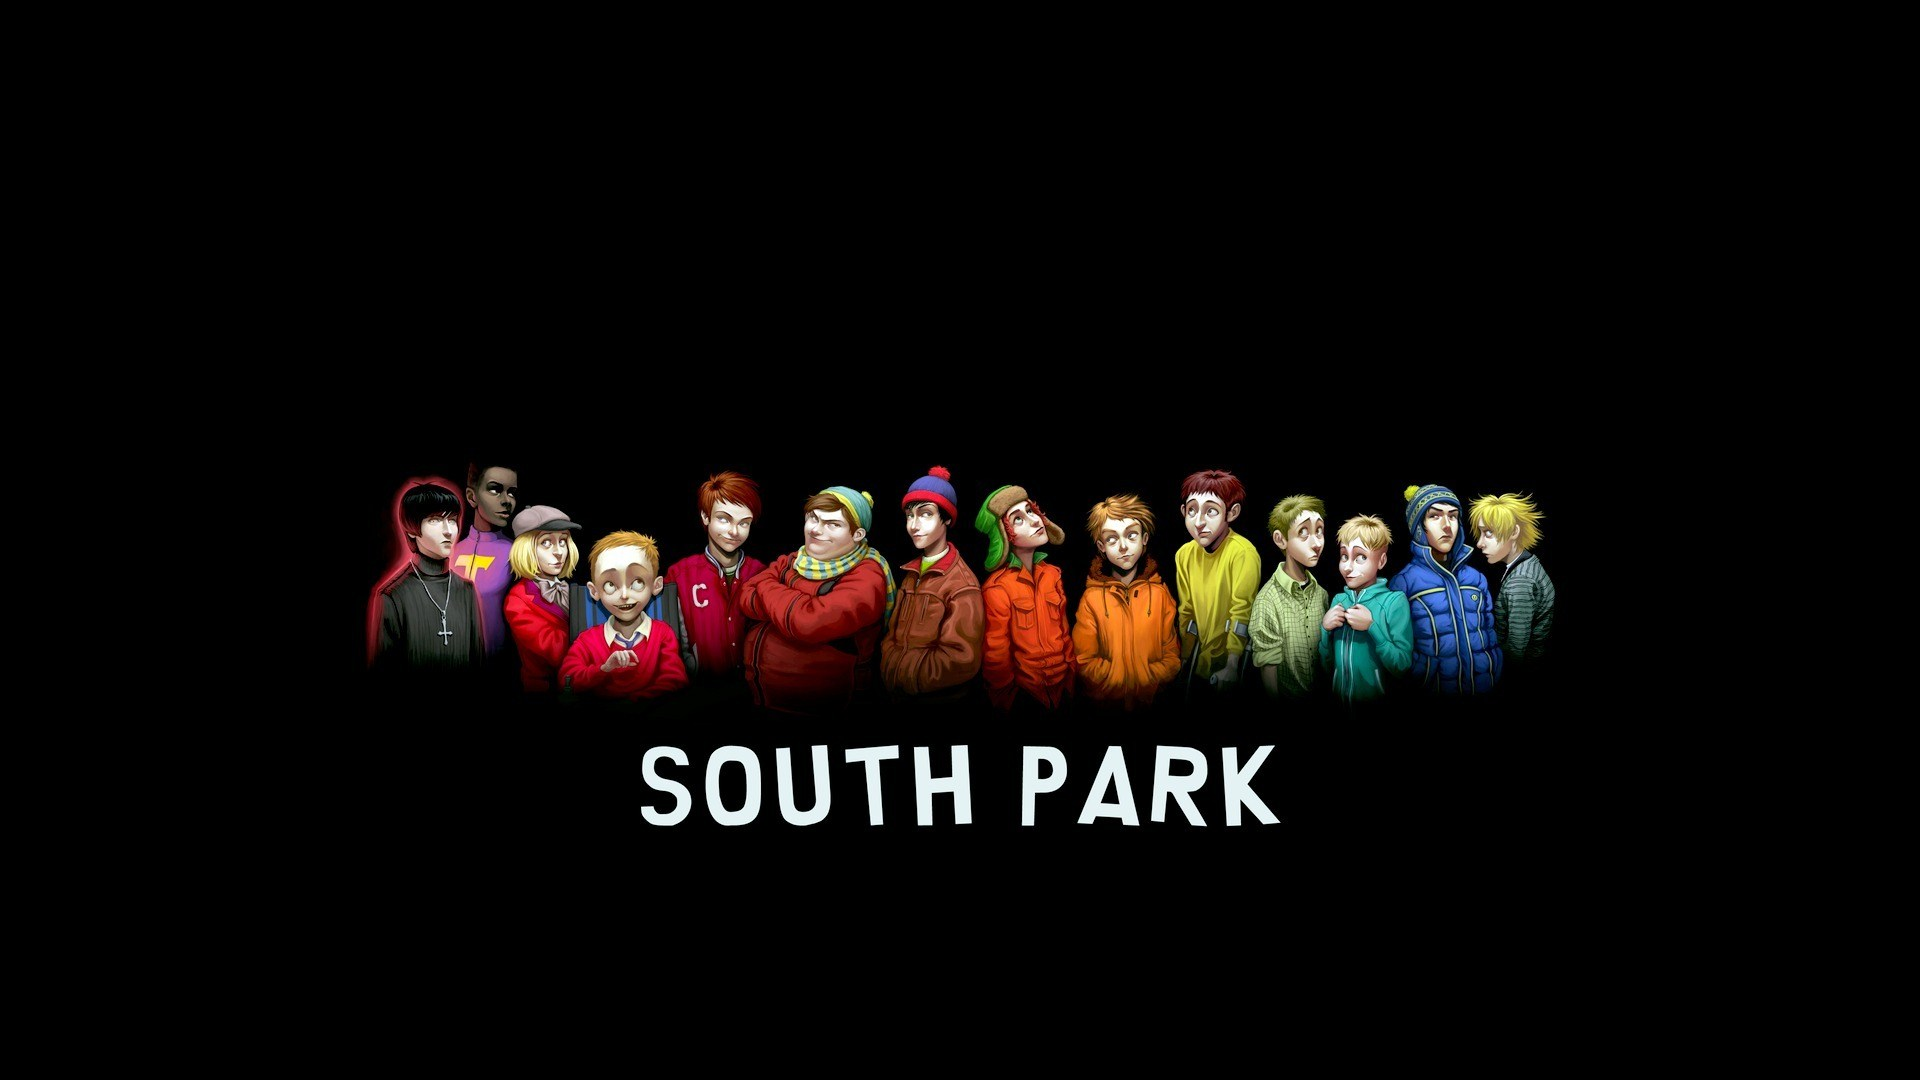 South Park wallpaper 8